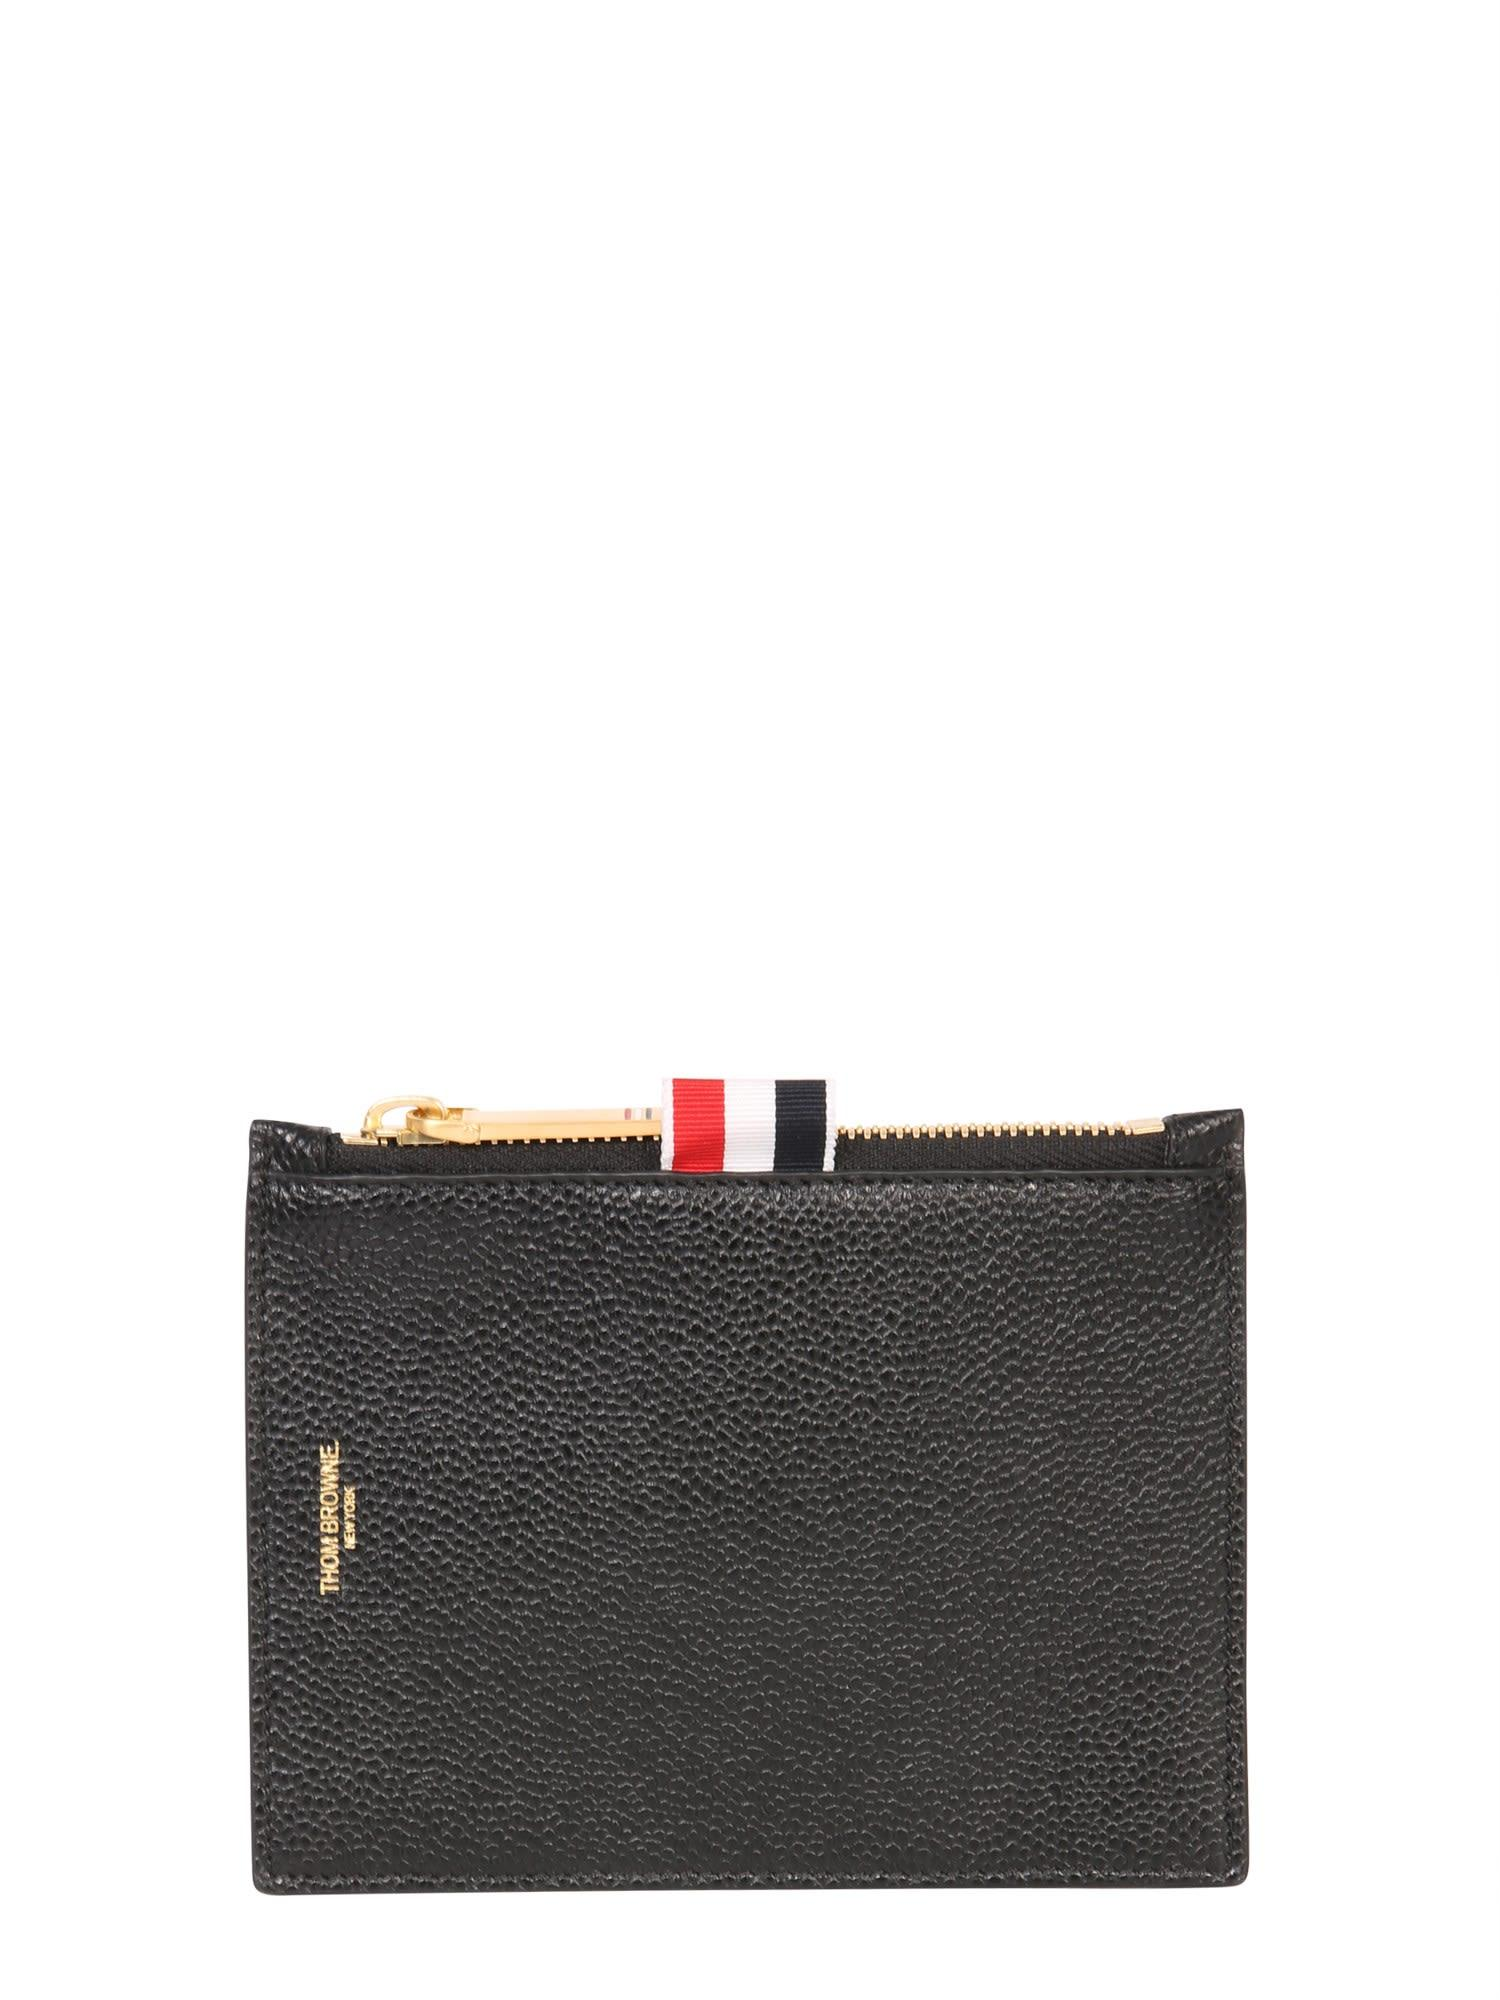 Thom Browne Grained Leather Card Holder In Nero